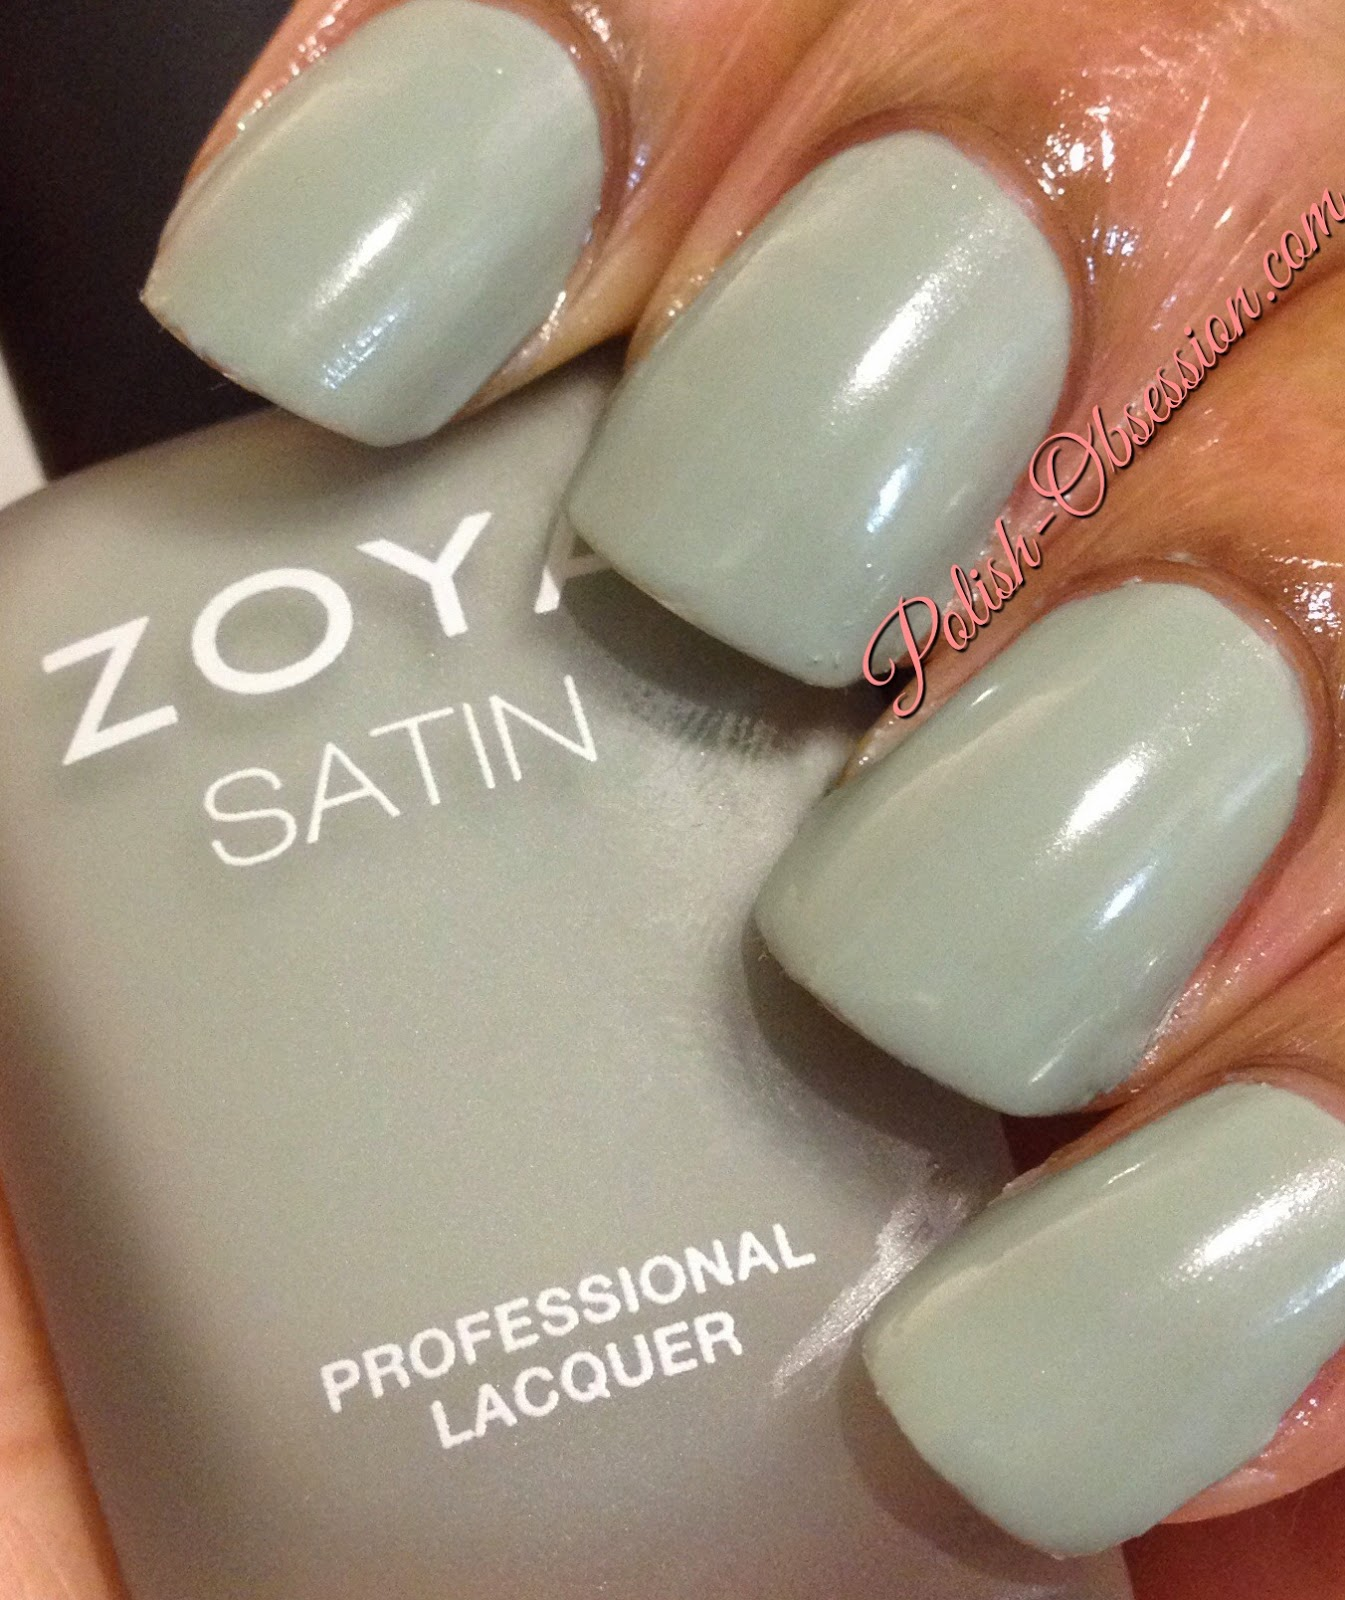 Zoya Naturel Satins - Swatches & Review | Polish Obsession